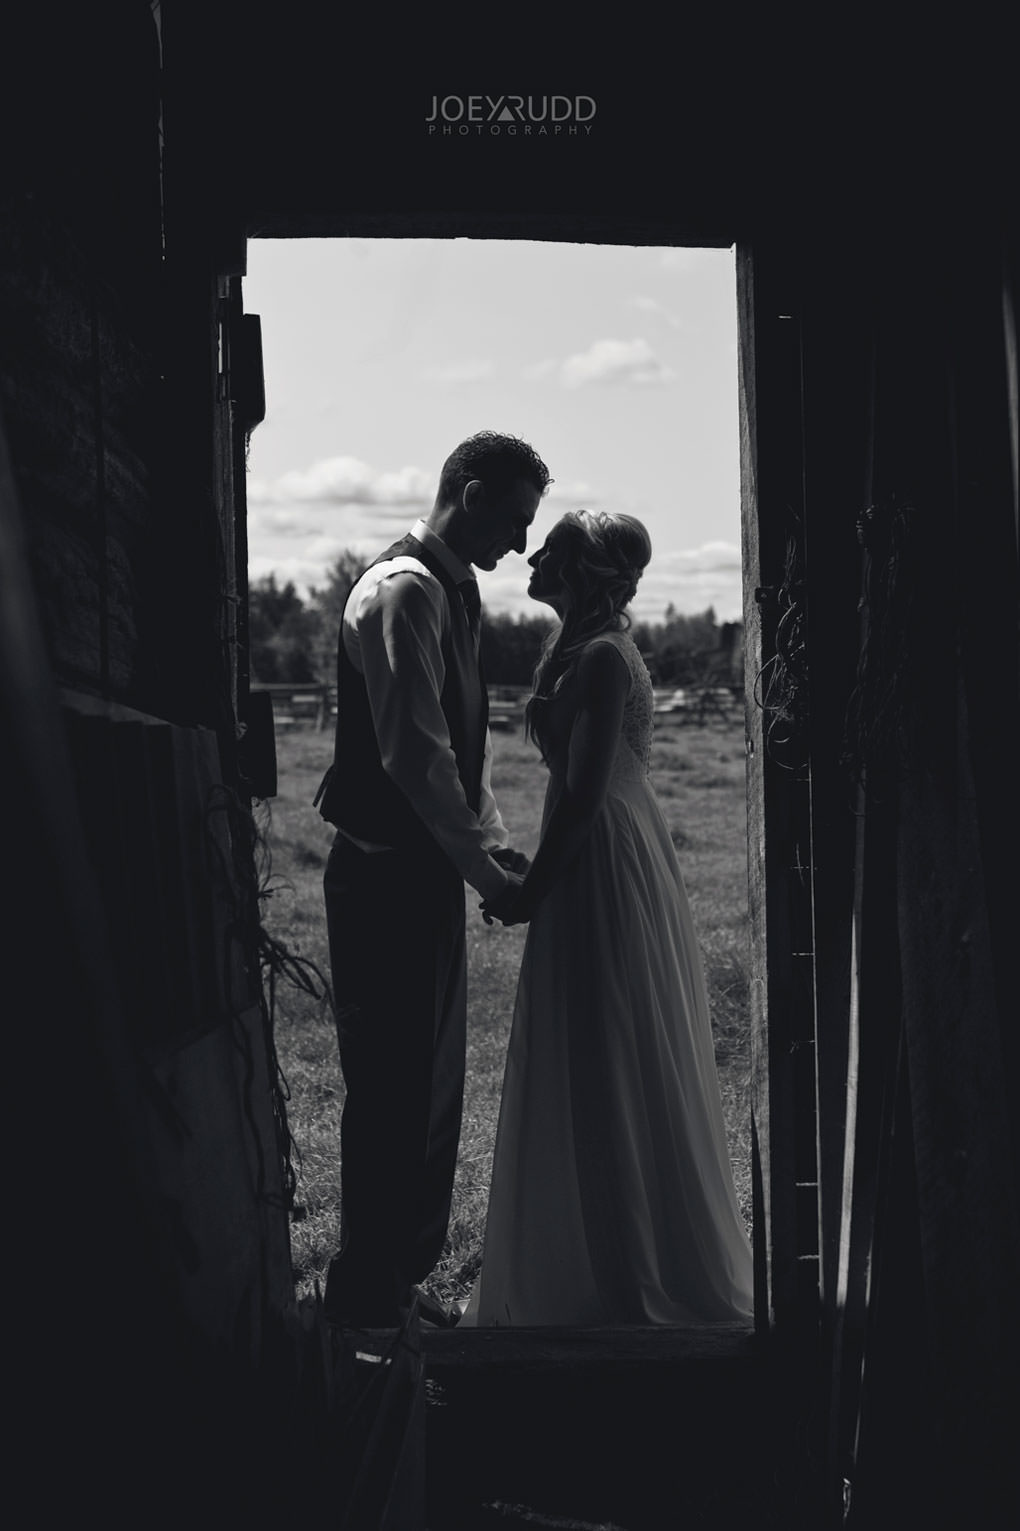 Ottawa Wedding Photography by Ottawa Wedding Photographer Joey Rudd Photography Elopement Carleton Place Smiths Falls Ontario Rustic Barn Silhouette